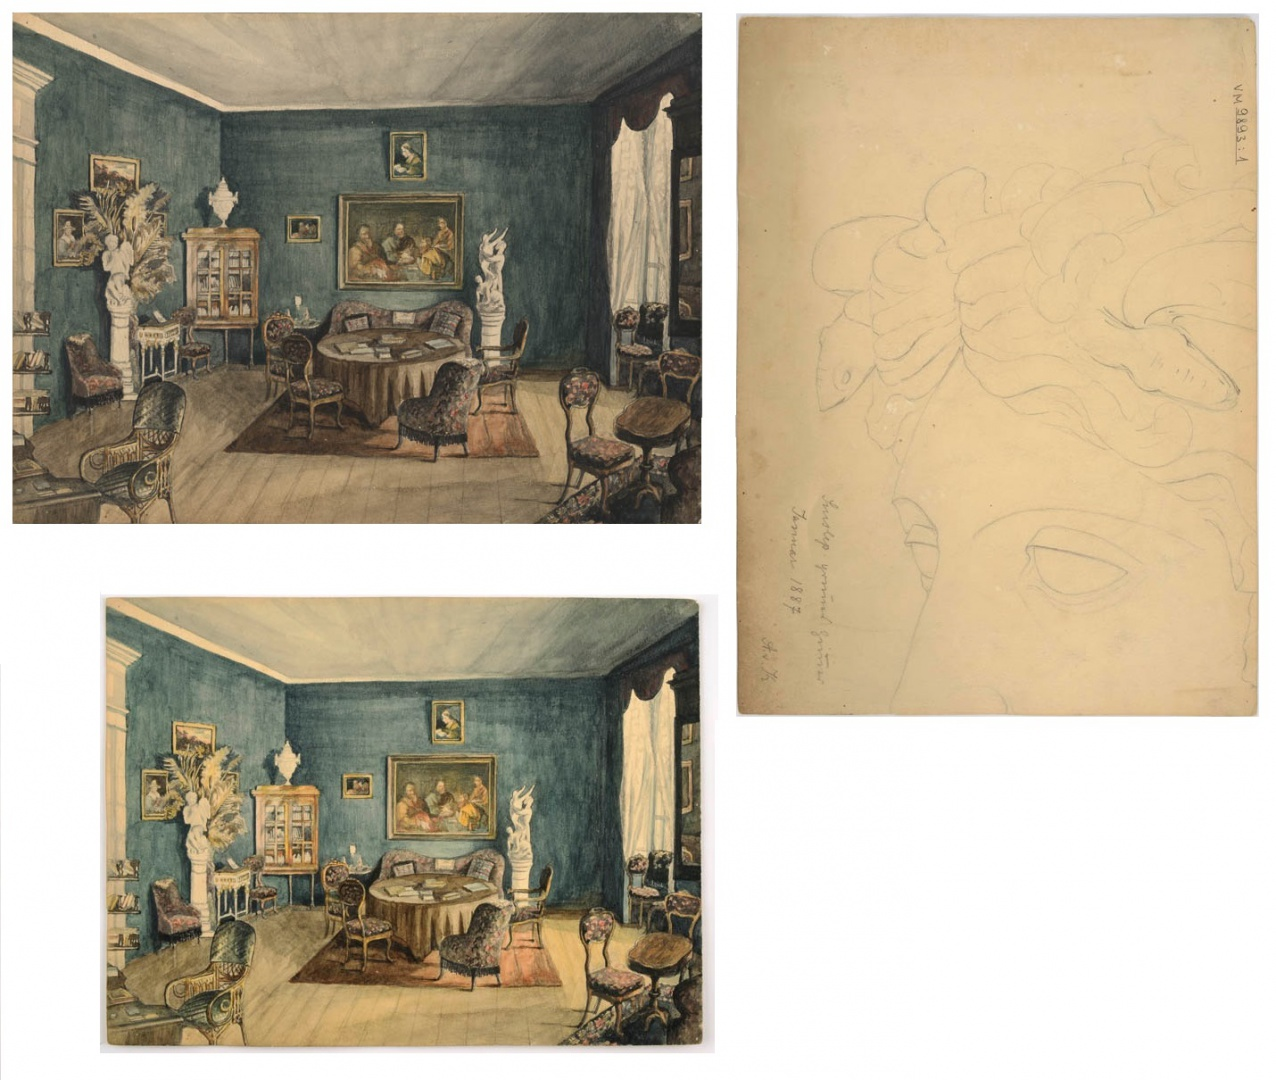 ill 29. Above the watercolour before conservation, below after conservation. On the right – a sketch of Medusa's head drawn on the back of the watercolour. Photo – Kanut.